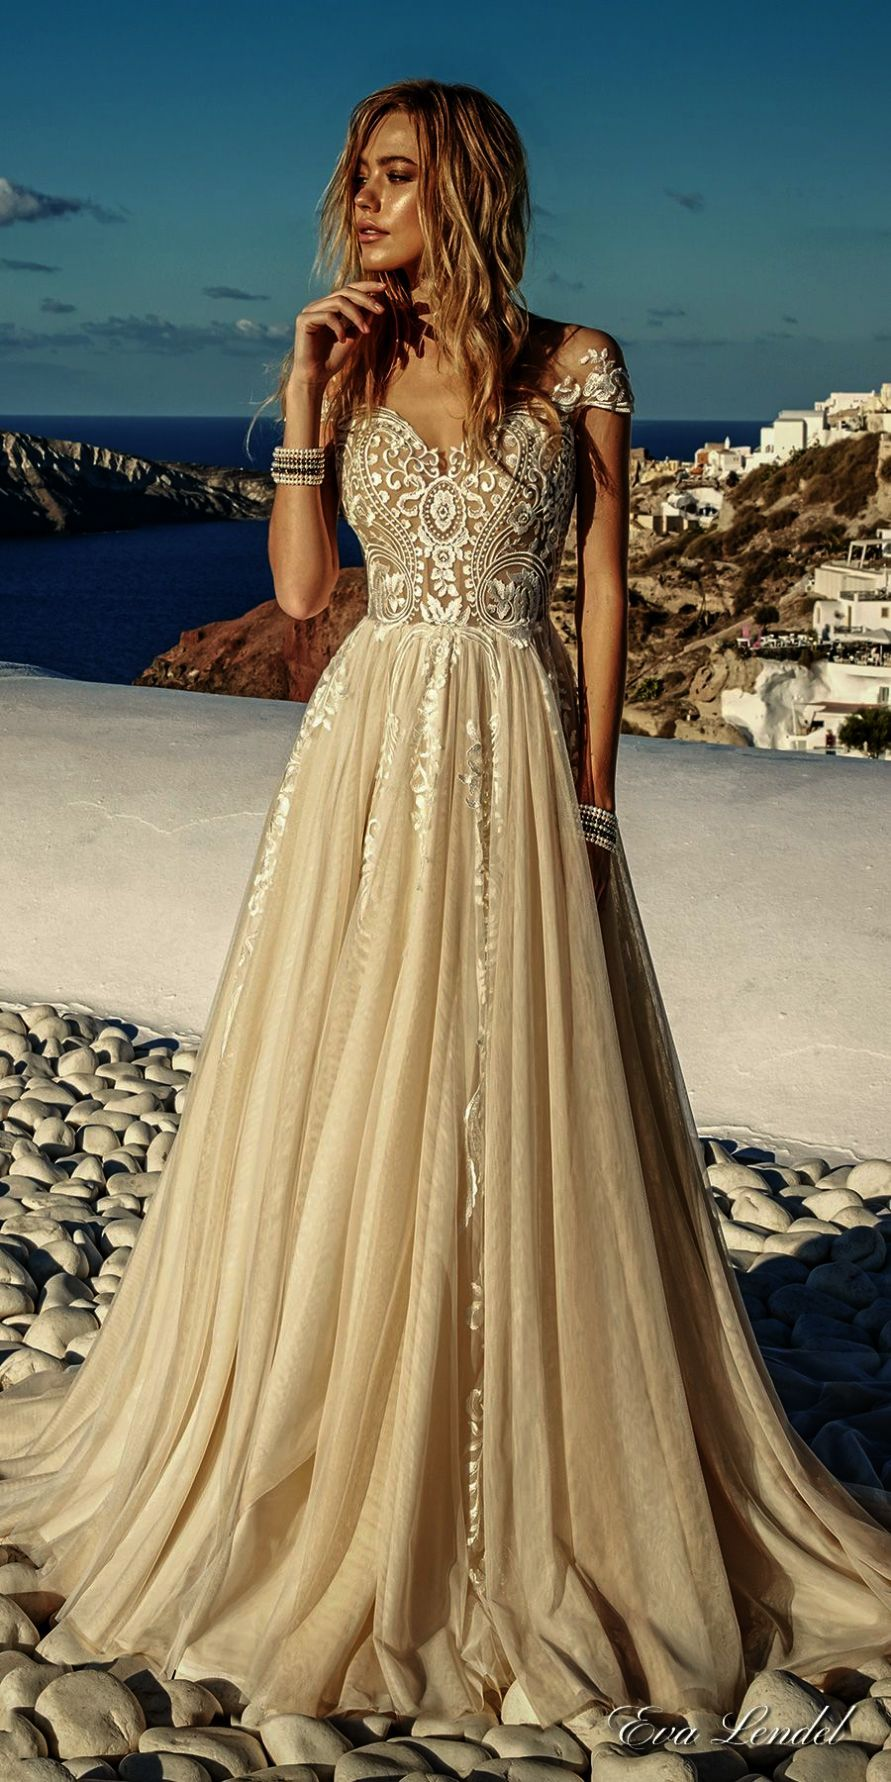 Lace mermaid wedding gowns with long trains  Lace Mermaid Wedding Gowns With Long Trains Lace Wedding Dresses No